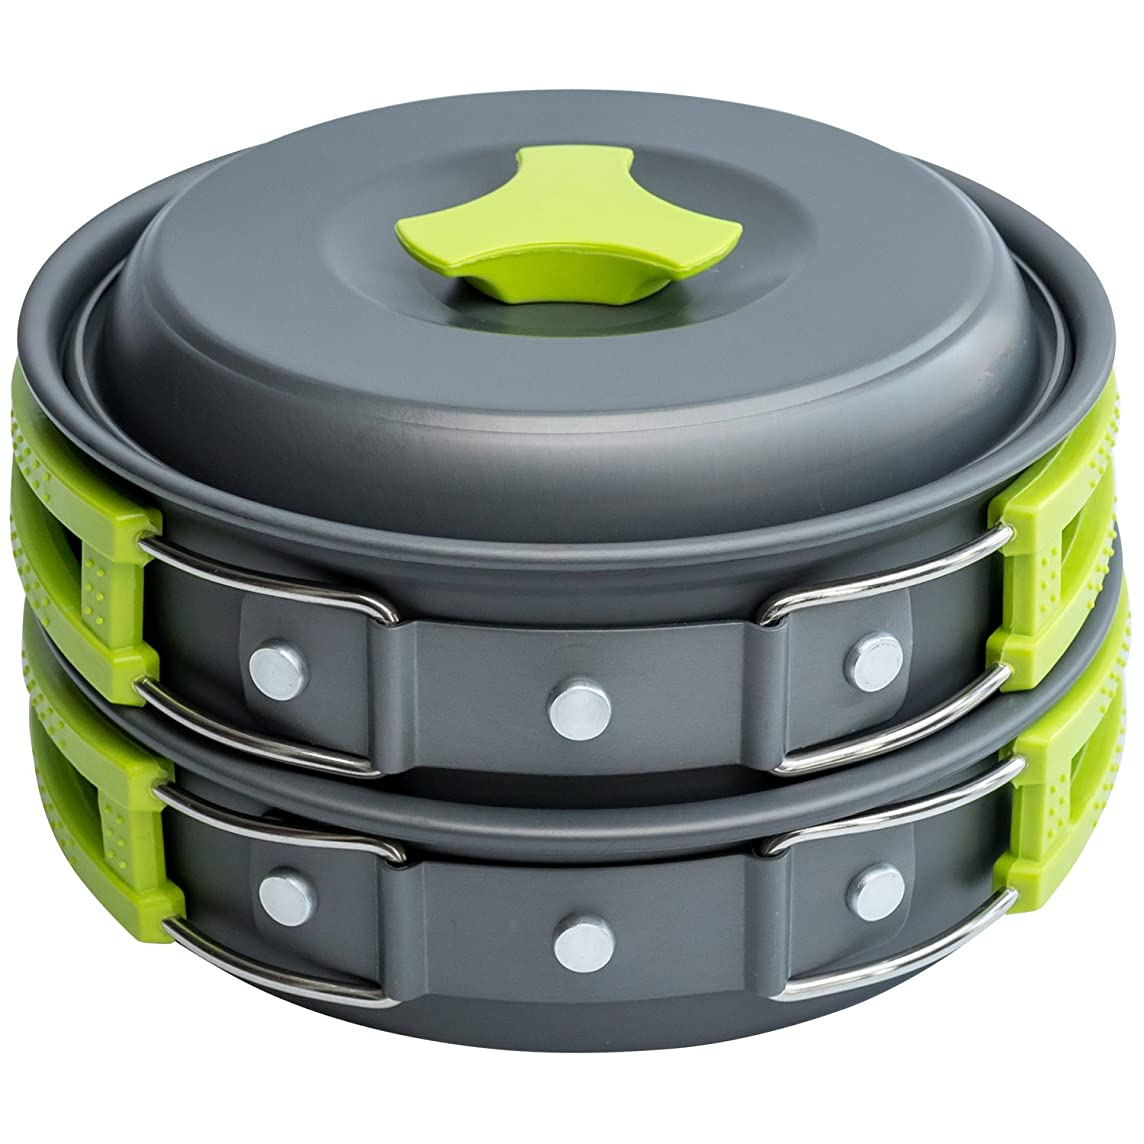 MalloMe Camping Cookware Mess Kit Backpacking Gear & Hiking Outdoors Bug Out Bag Cooking Equipment Cookset | Lightweight, Compact, Durable Pot Pan Bowls